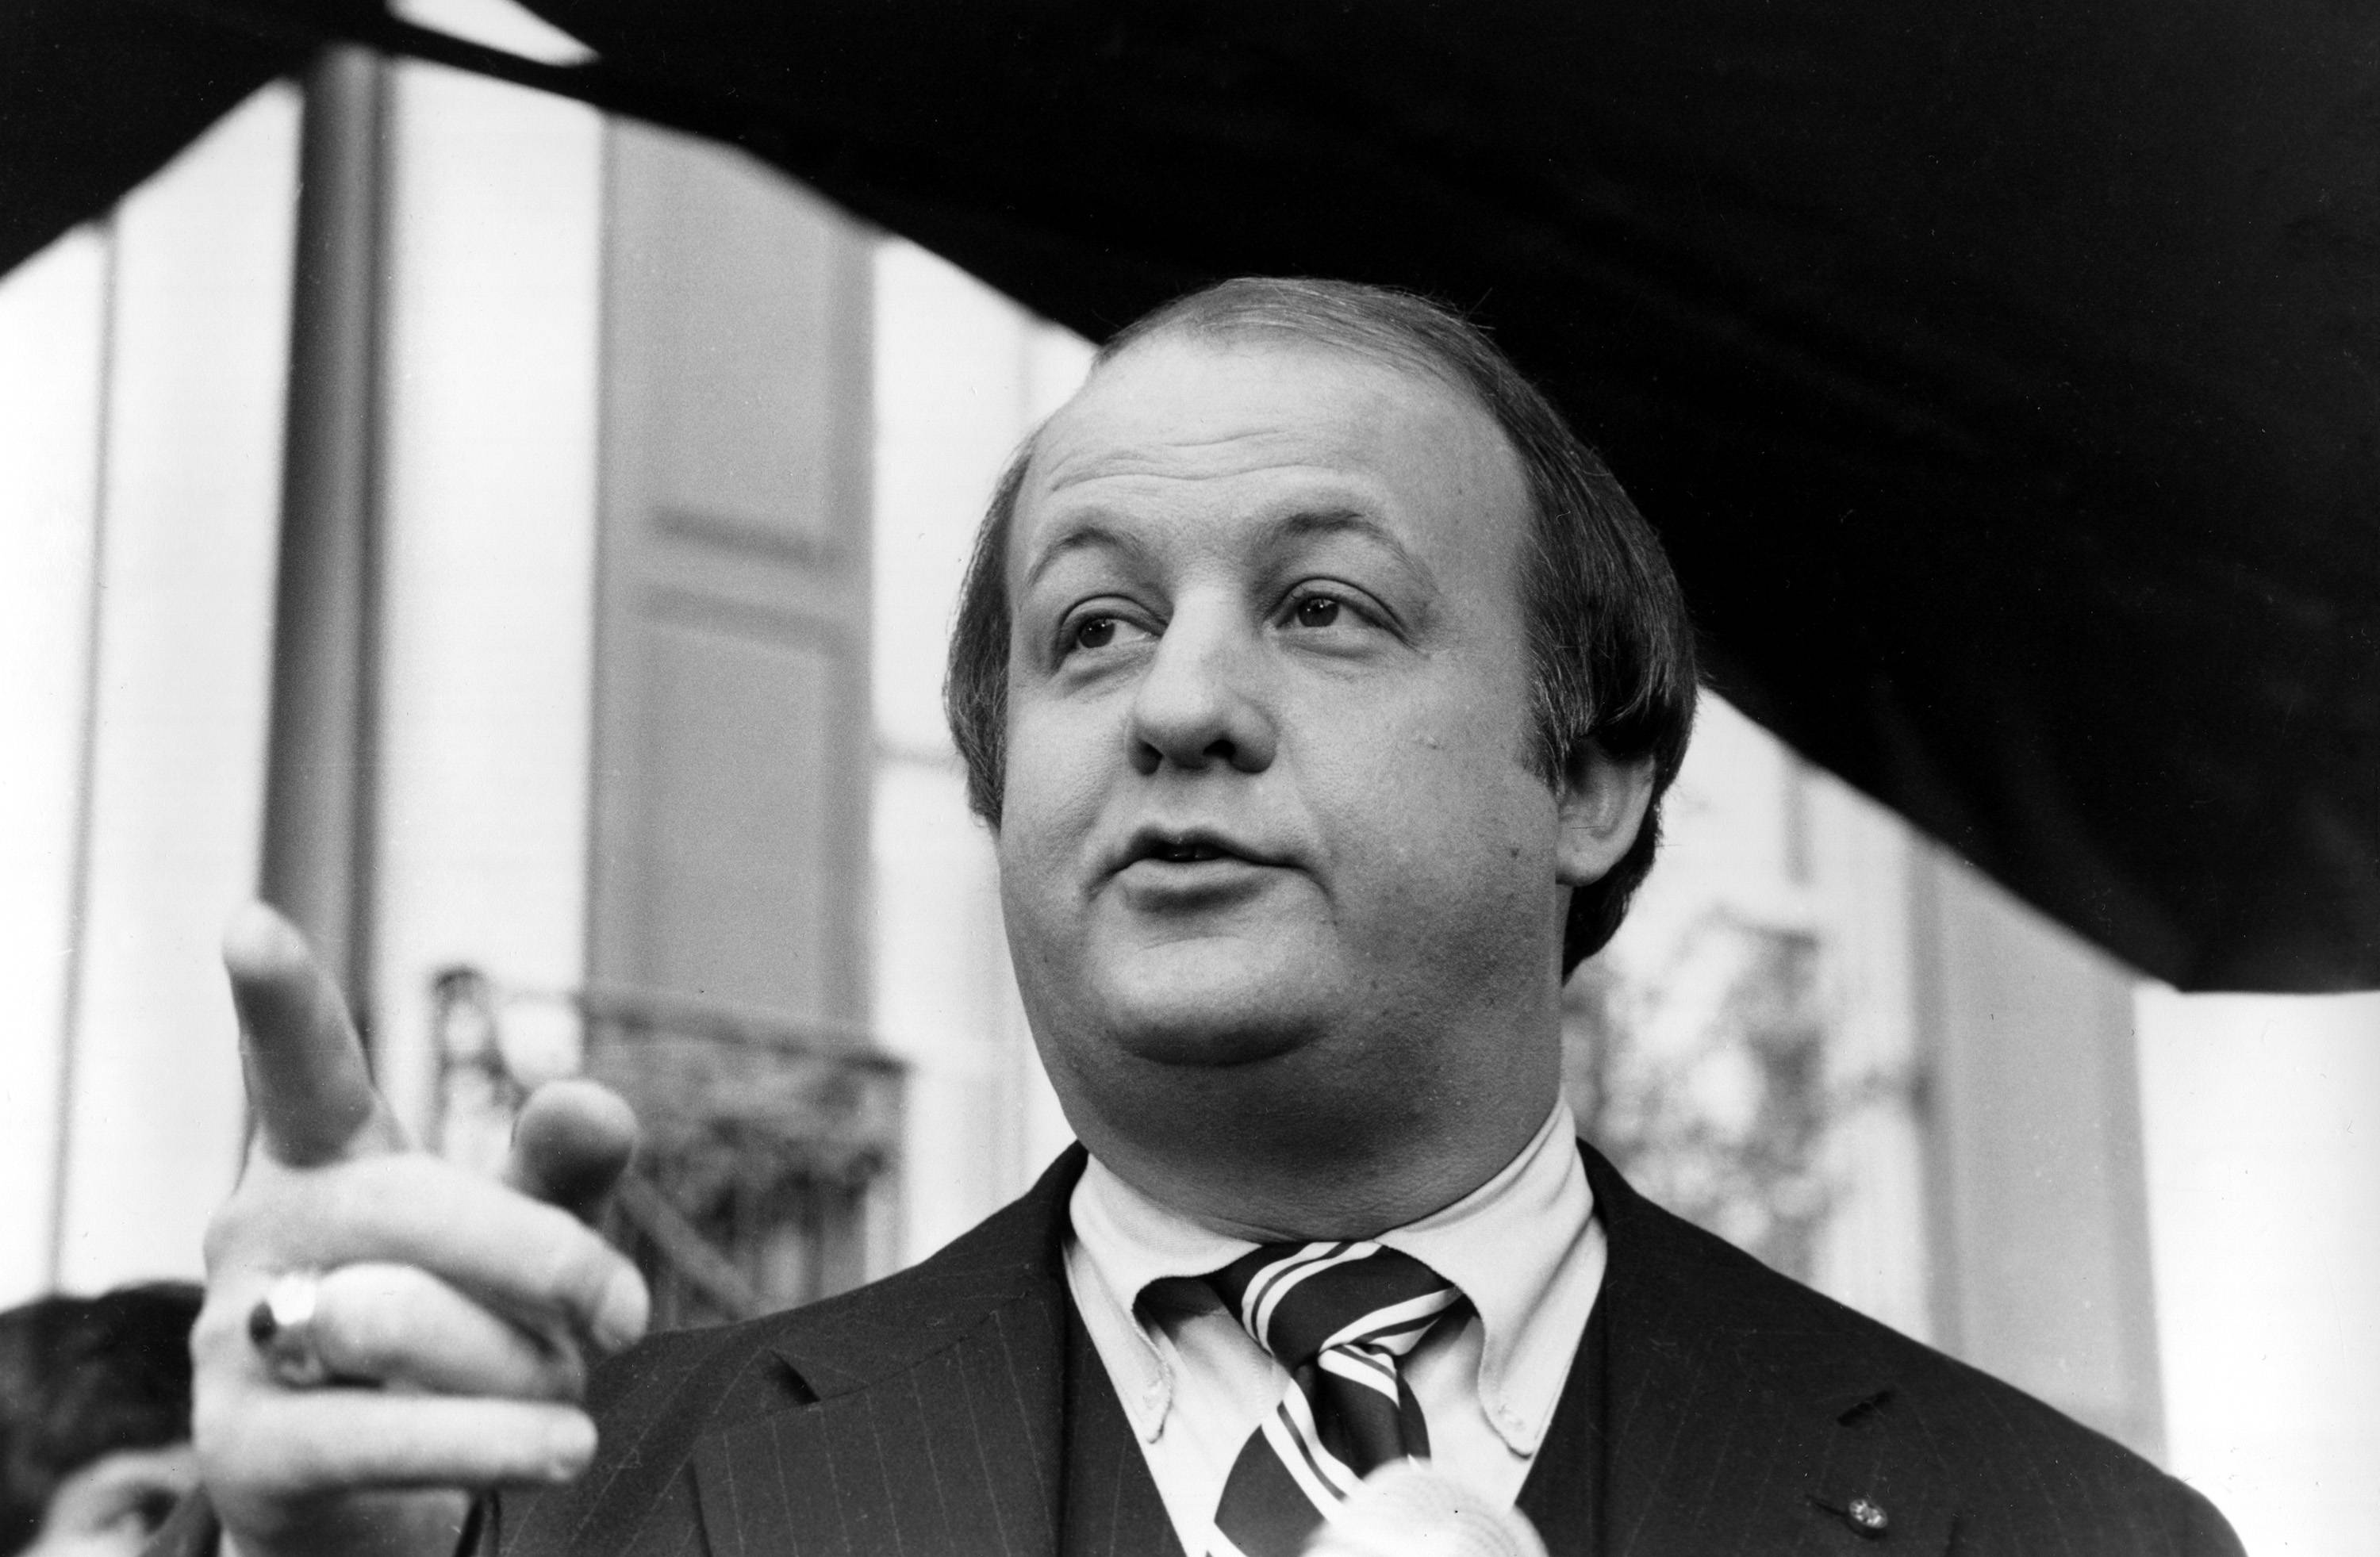 James Brady, selected by president-elect Ronald Reagan to become his press secretary, talking to reporters.